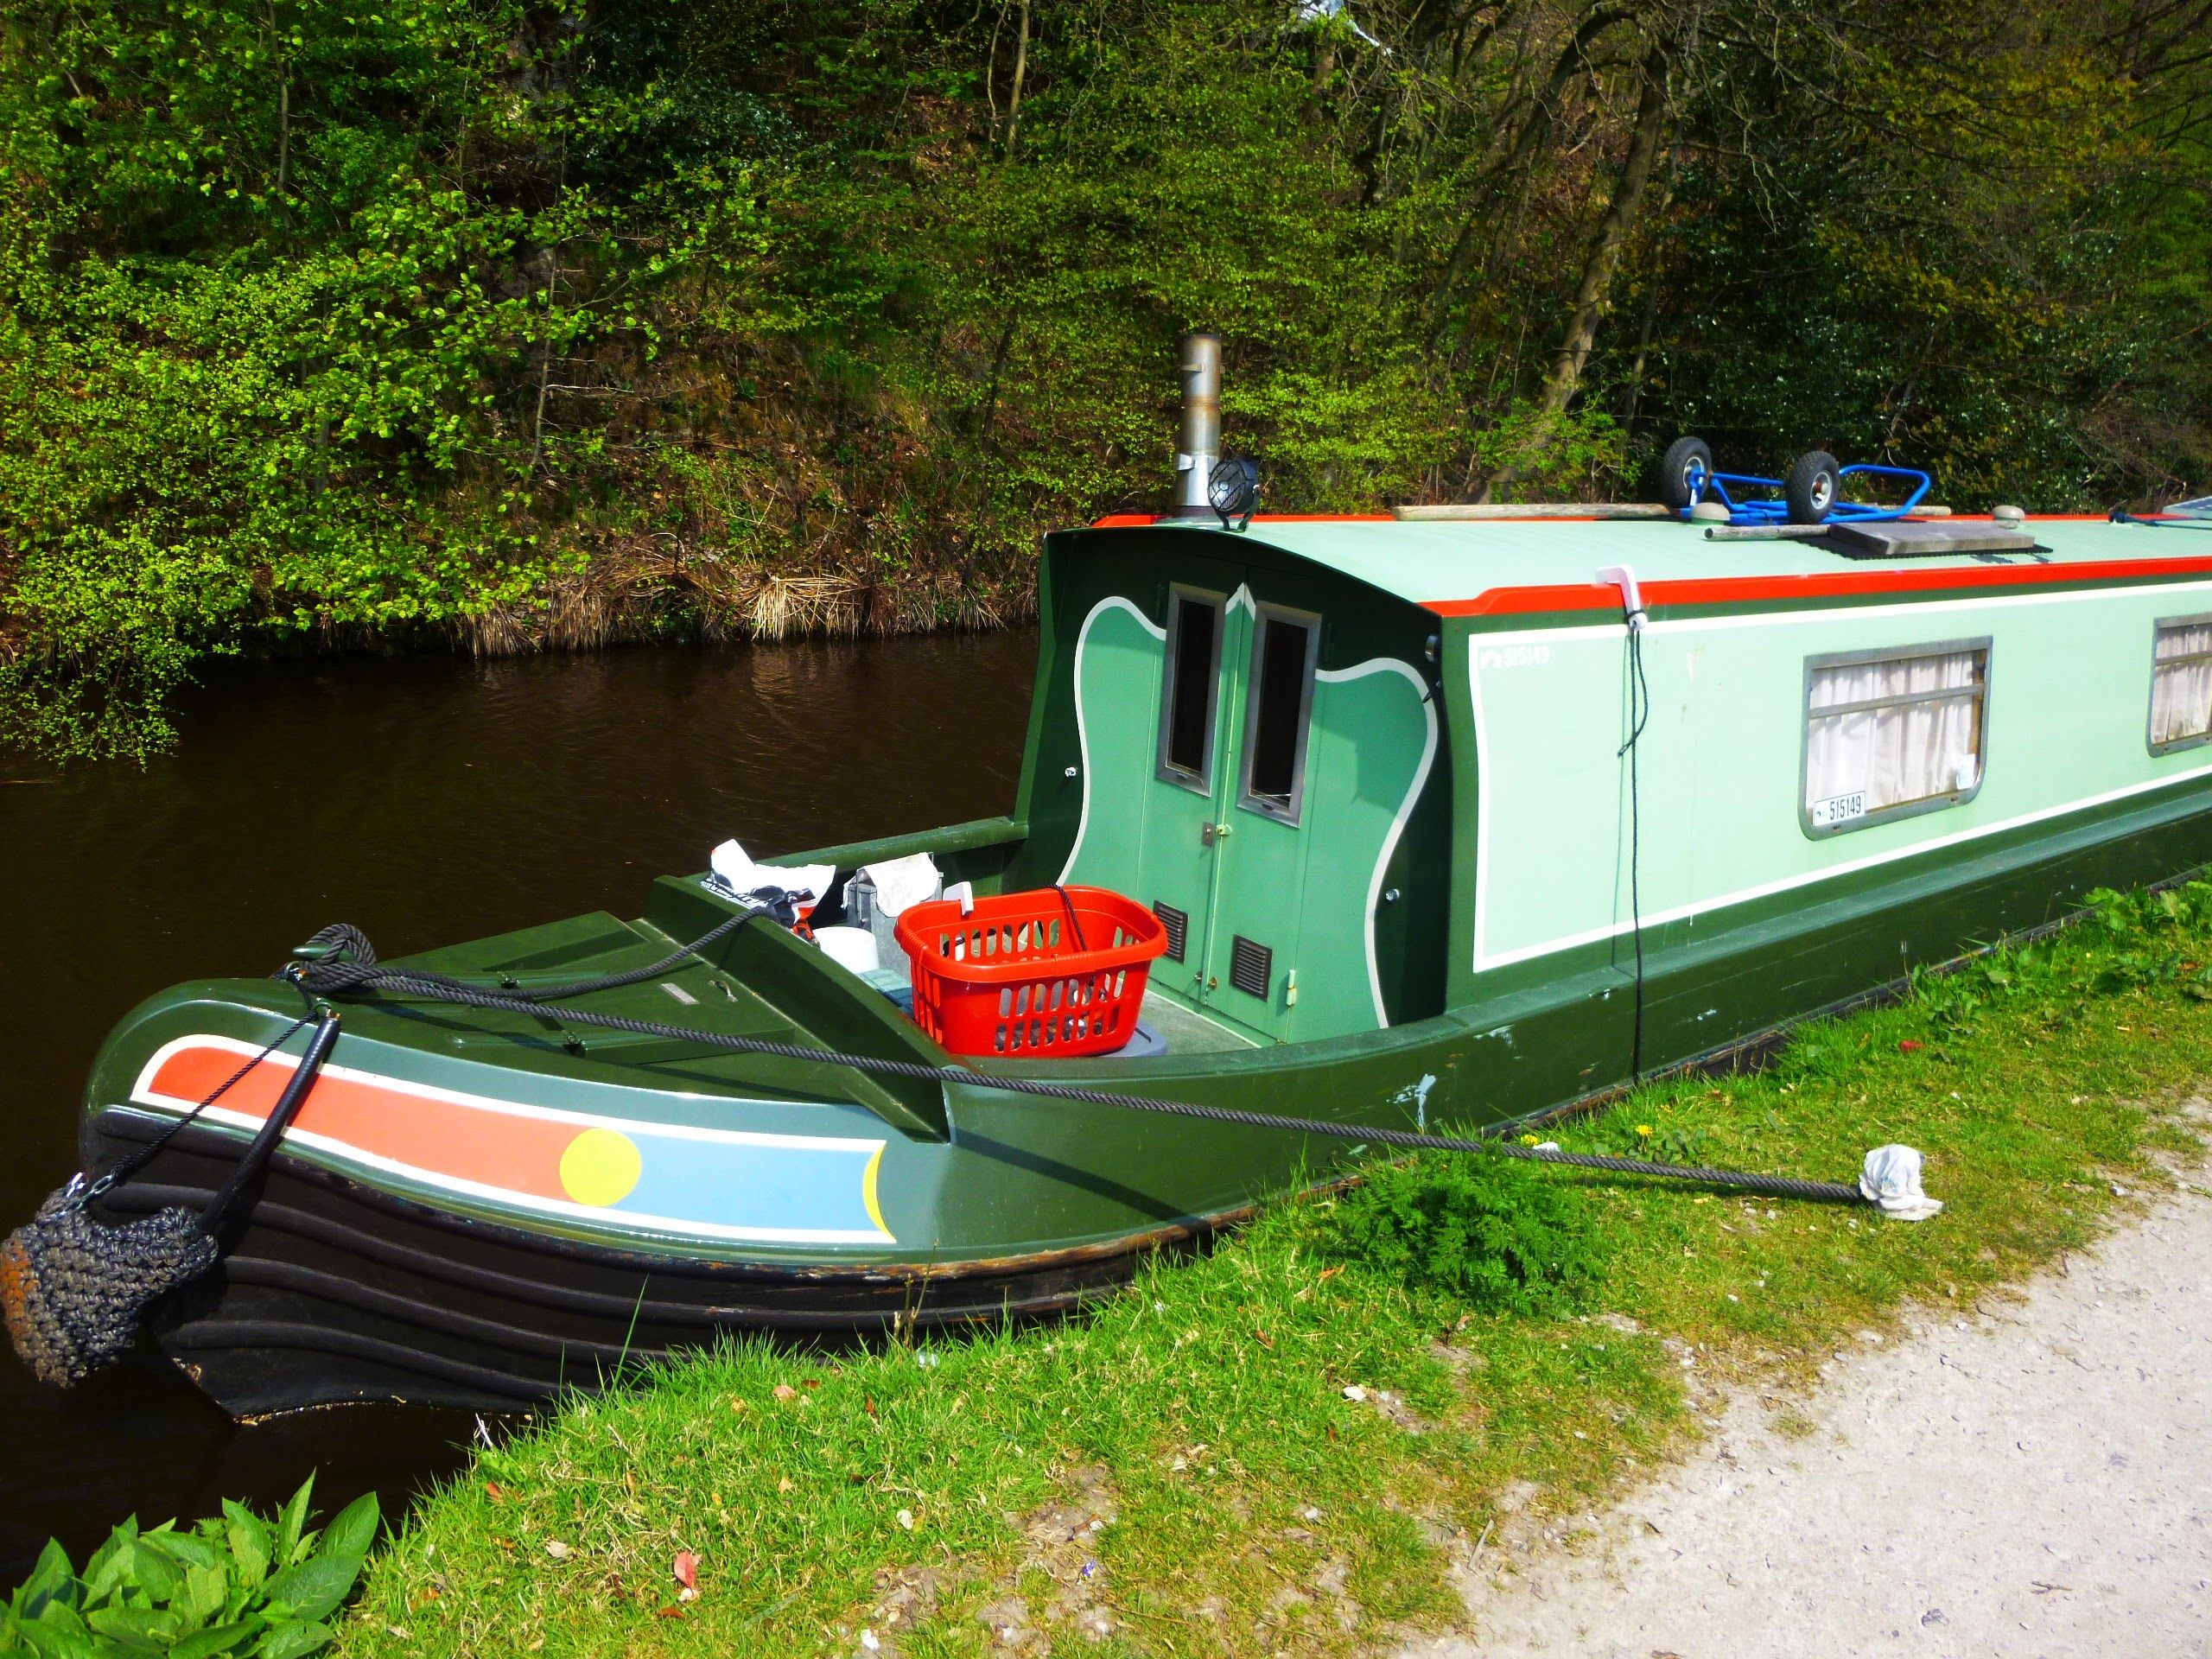 Canal barge in Greenfield England photo by Zrnho Correy.